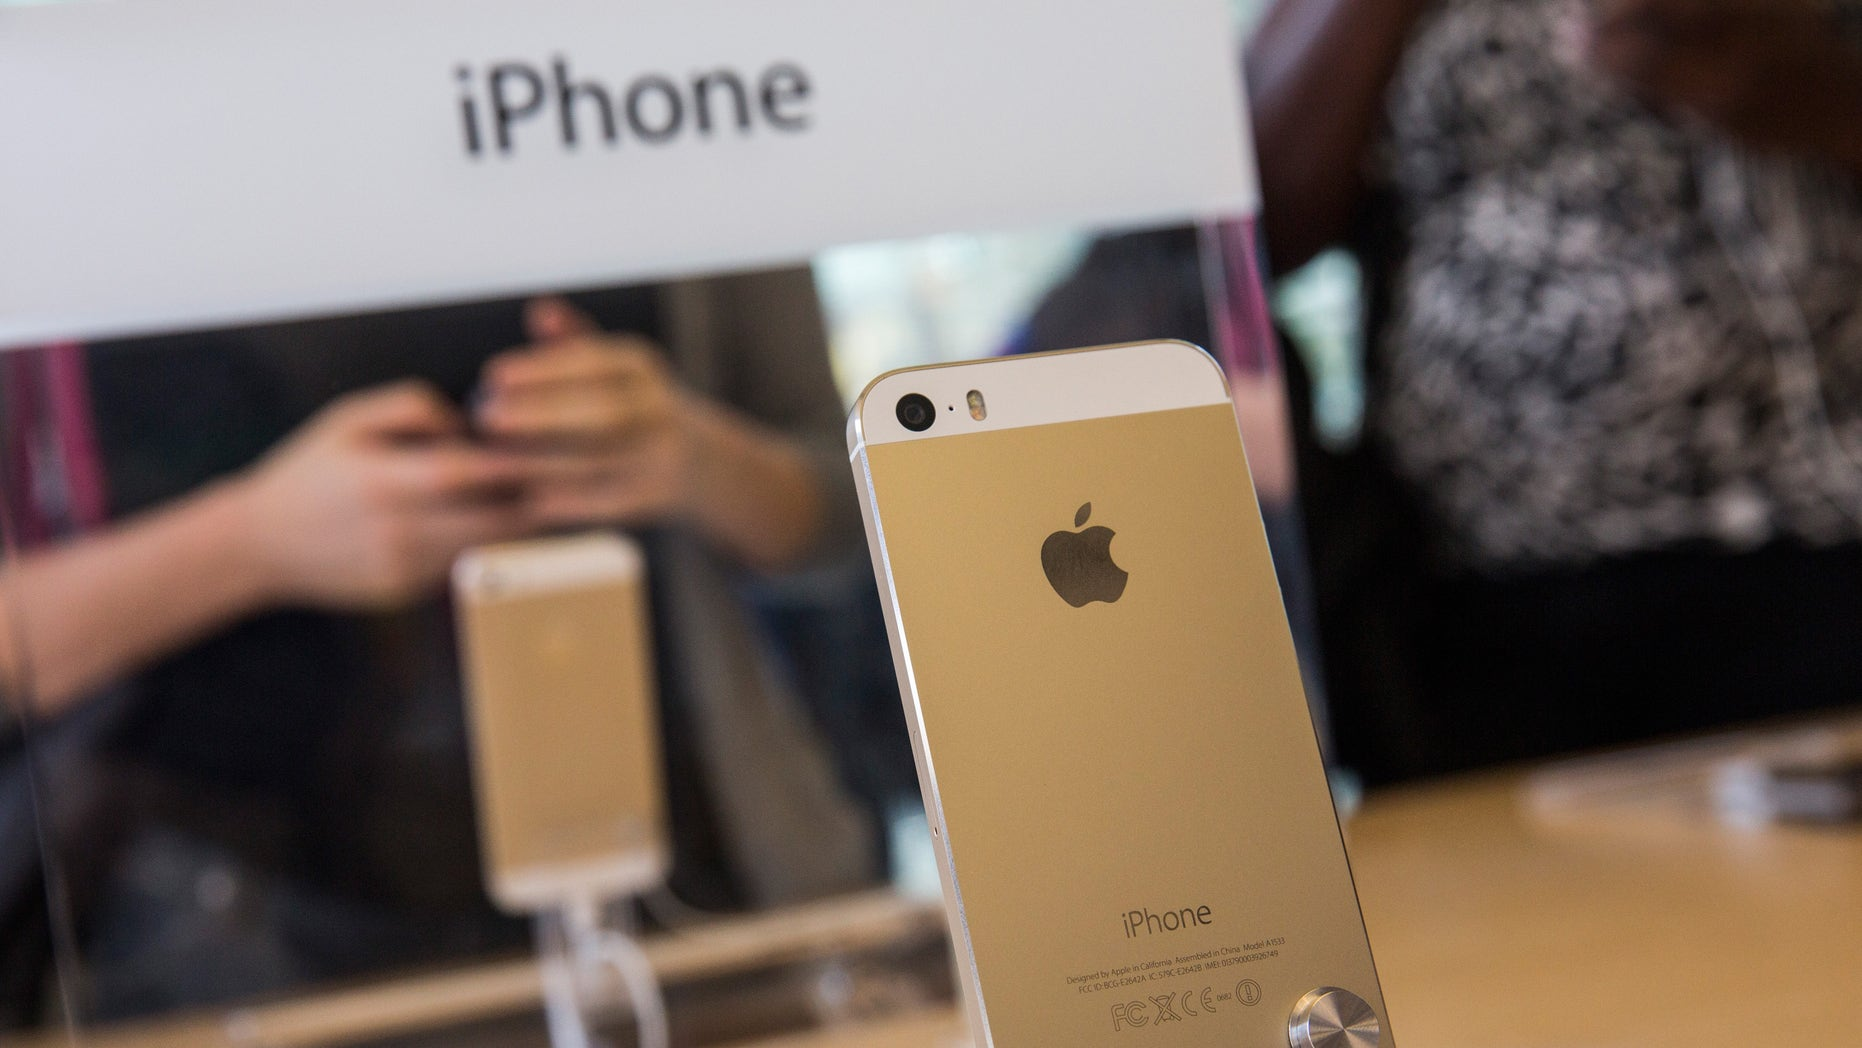 NEW YORK, NY - SEPTEMBER 20:  The gold version of the iPhone 5S is displayed at an Apple store on September 20, 2013 in New York City. Apple launched two new models of iPhone: the iPhone 5S, which is preceded by the iPhone 5, and a cheaper, paired down version, the iPhone 5C. The Gold version of the phone has reportedly become one of the hardest to find and orders are backed-up into October. (Photo by Andrew Burton/Getty Images)